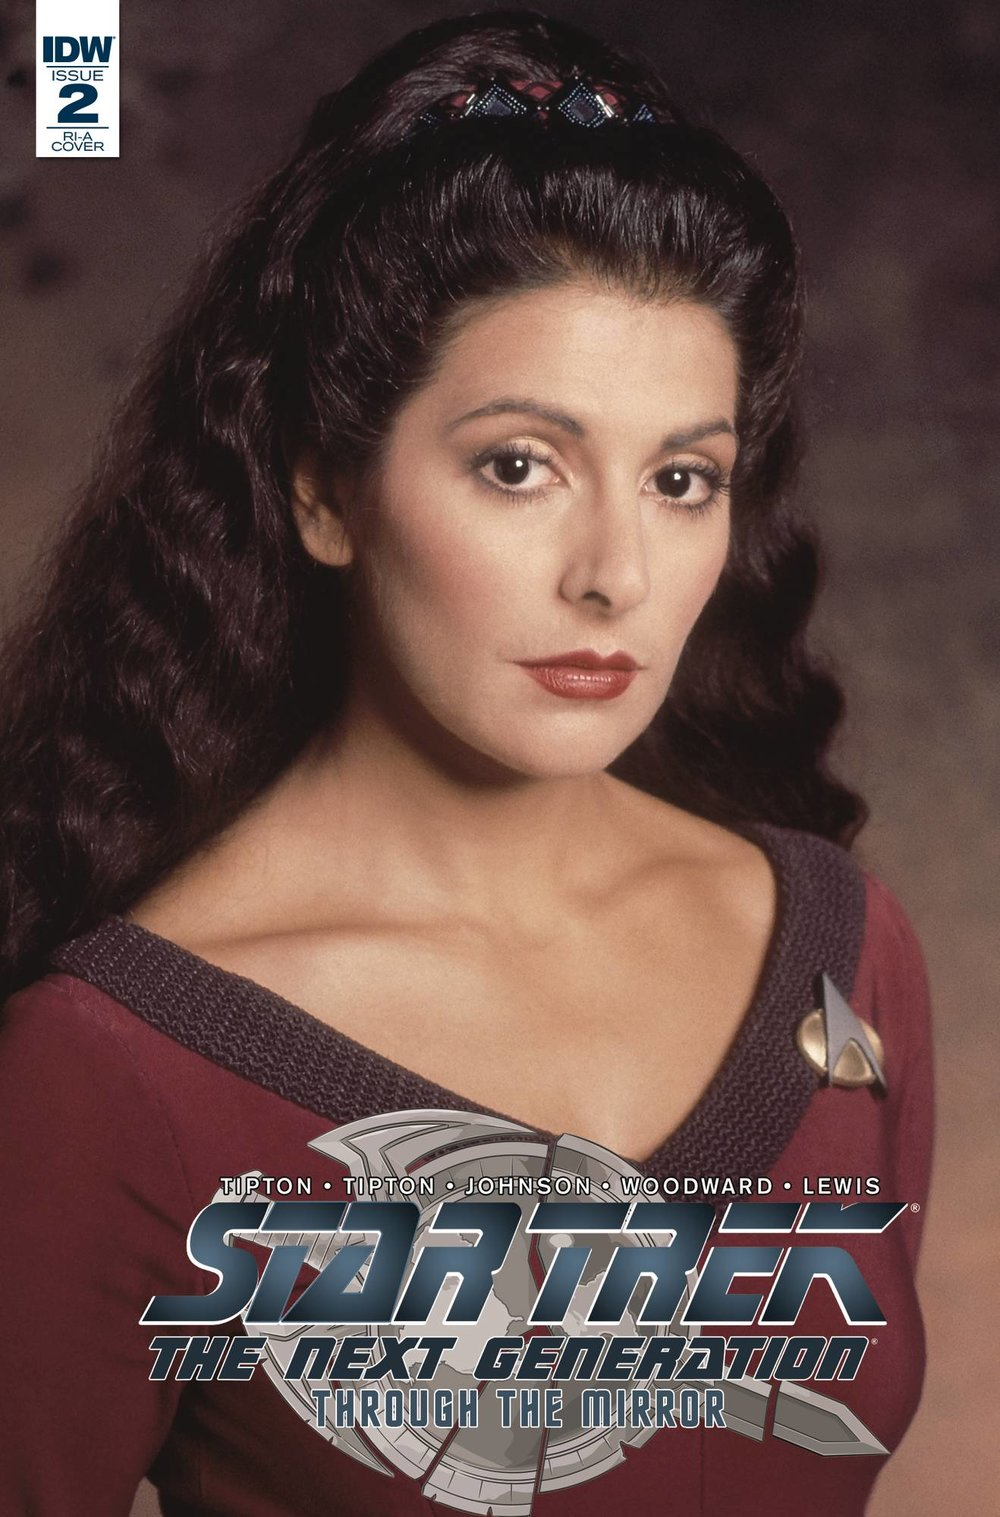 STAR TREK TNG THROUGH THE MIRROR 2 10 COPY PHOTO INCV.jpg